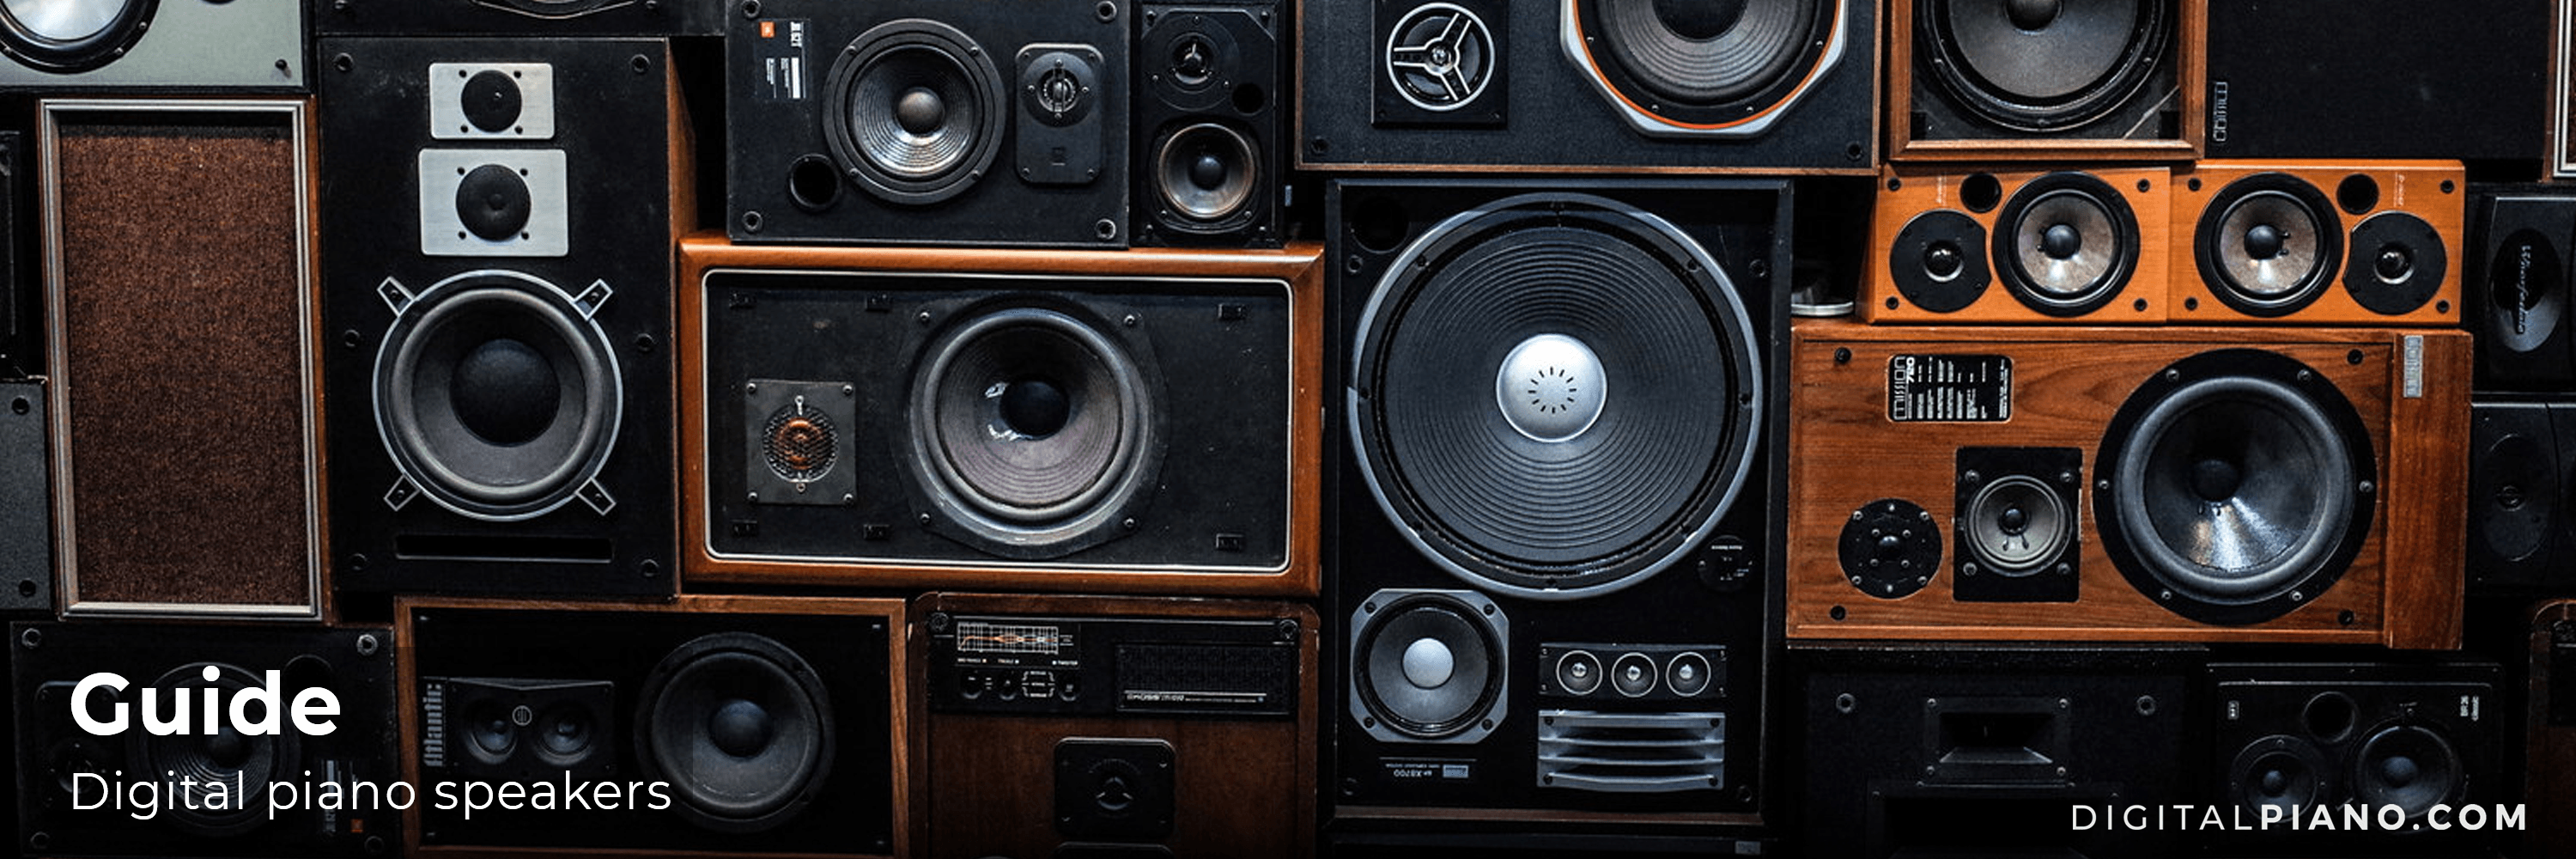 Guide to speakers